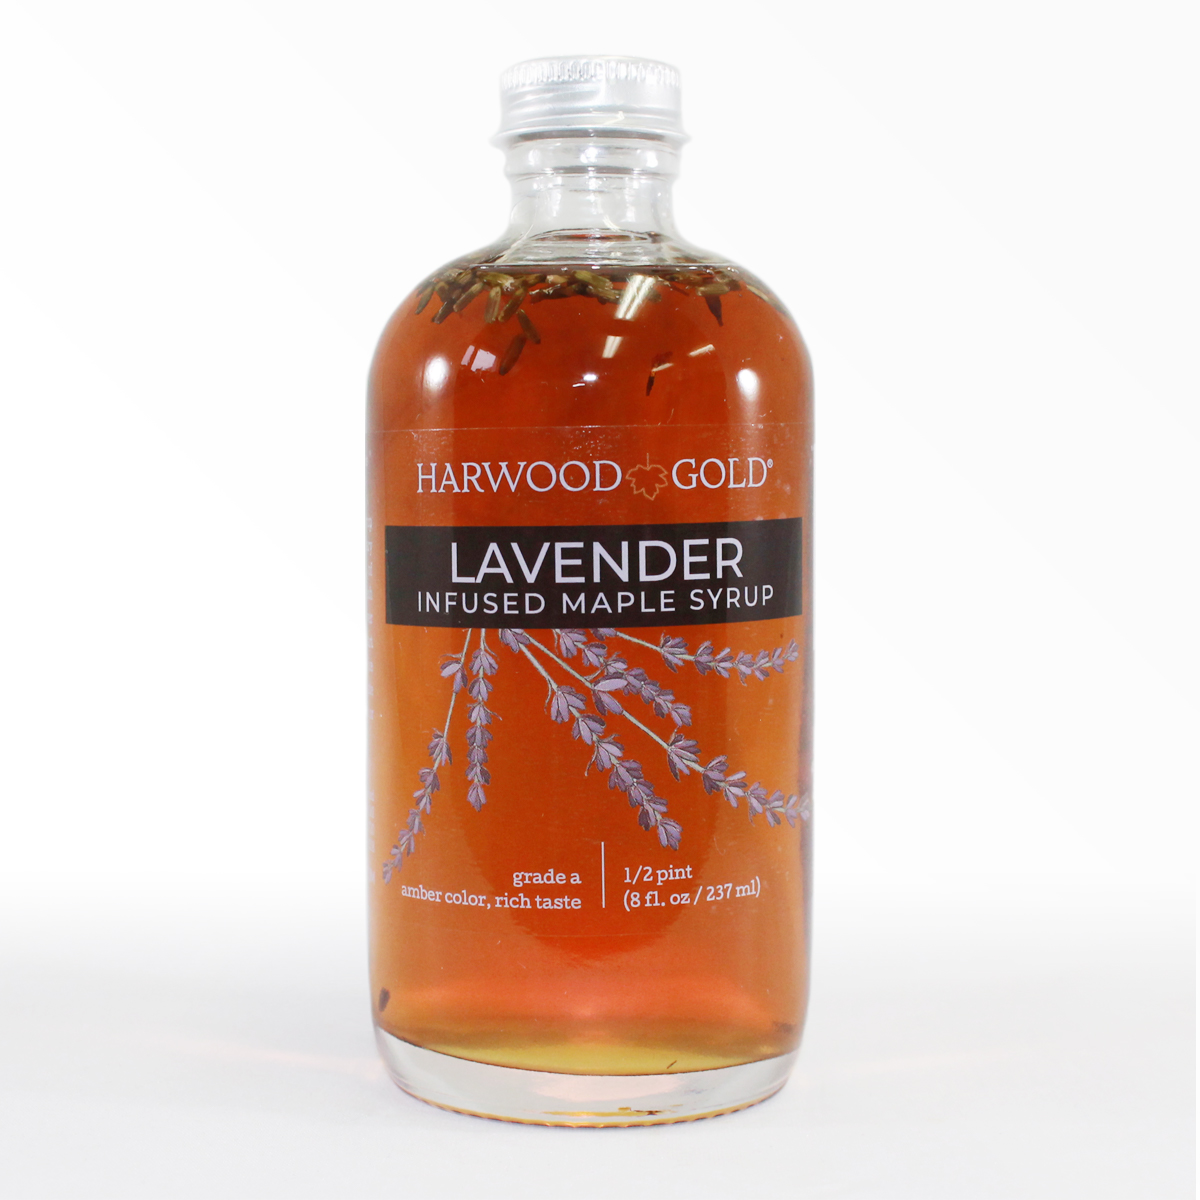 Harwood Gold Lavender Infused Pure Maple Syrup